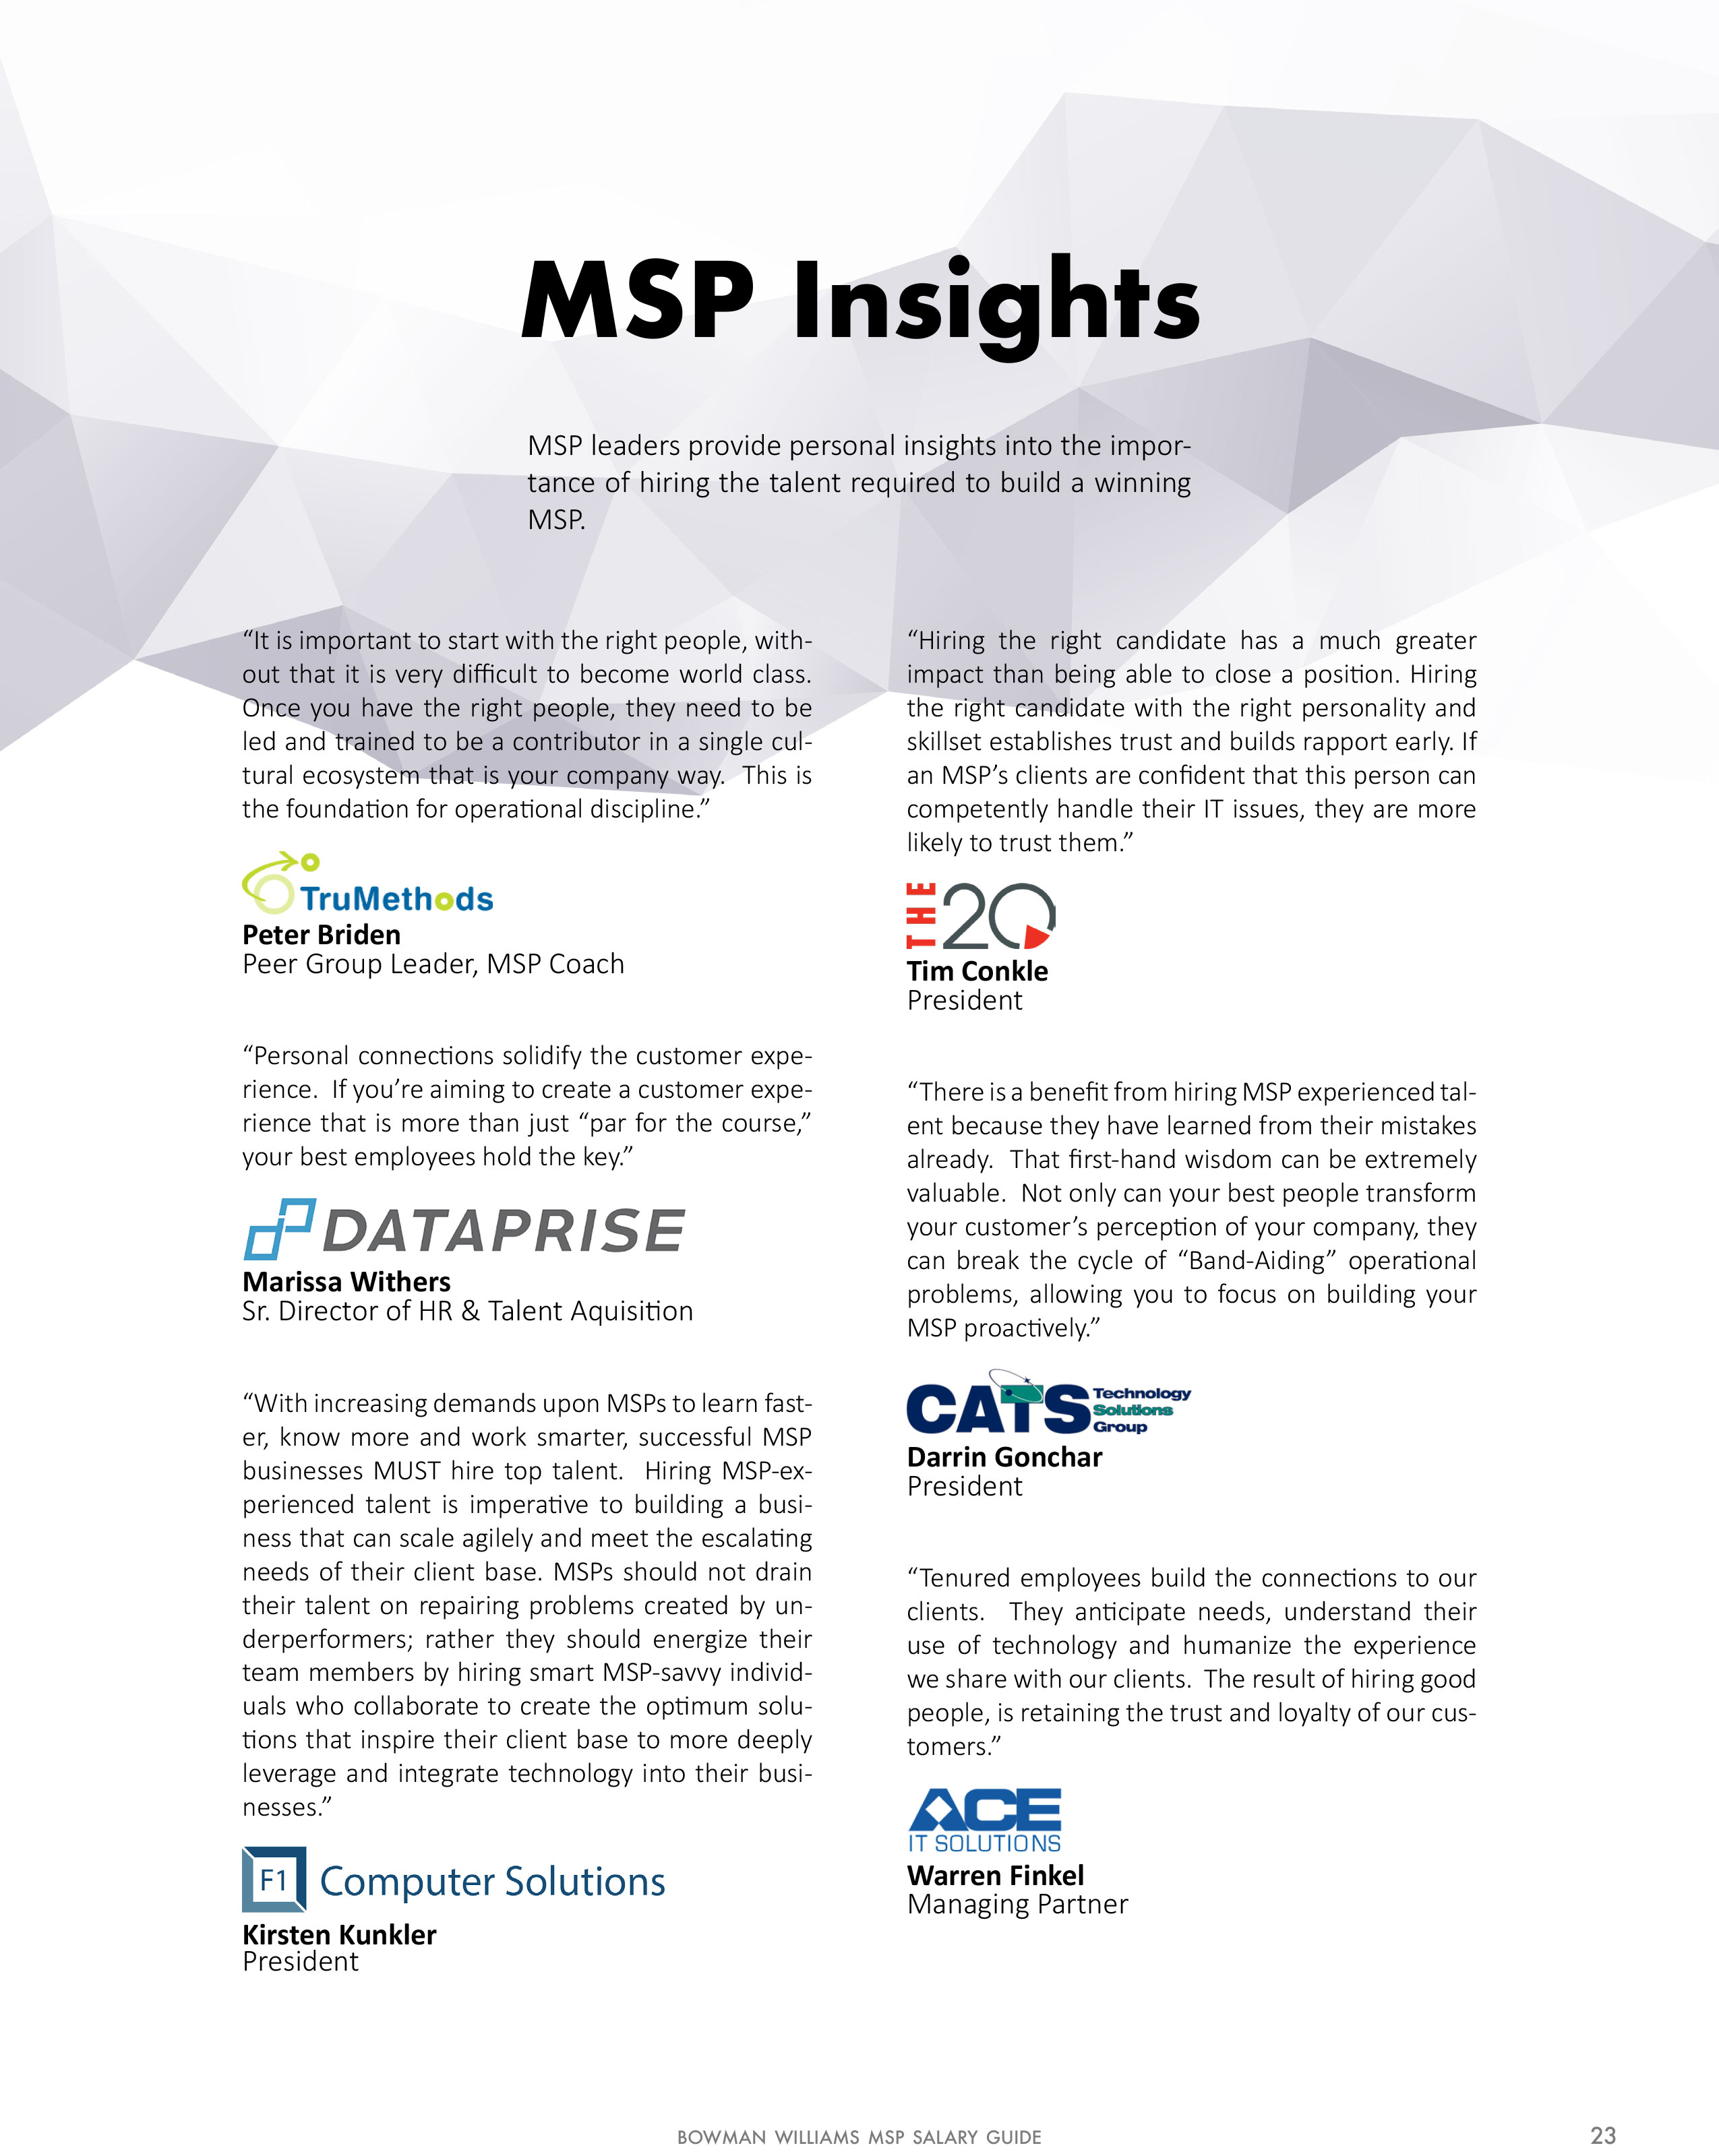 msp-insights